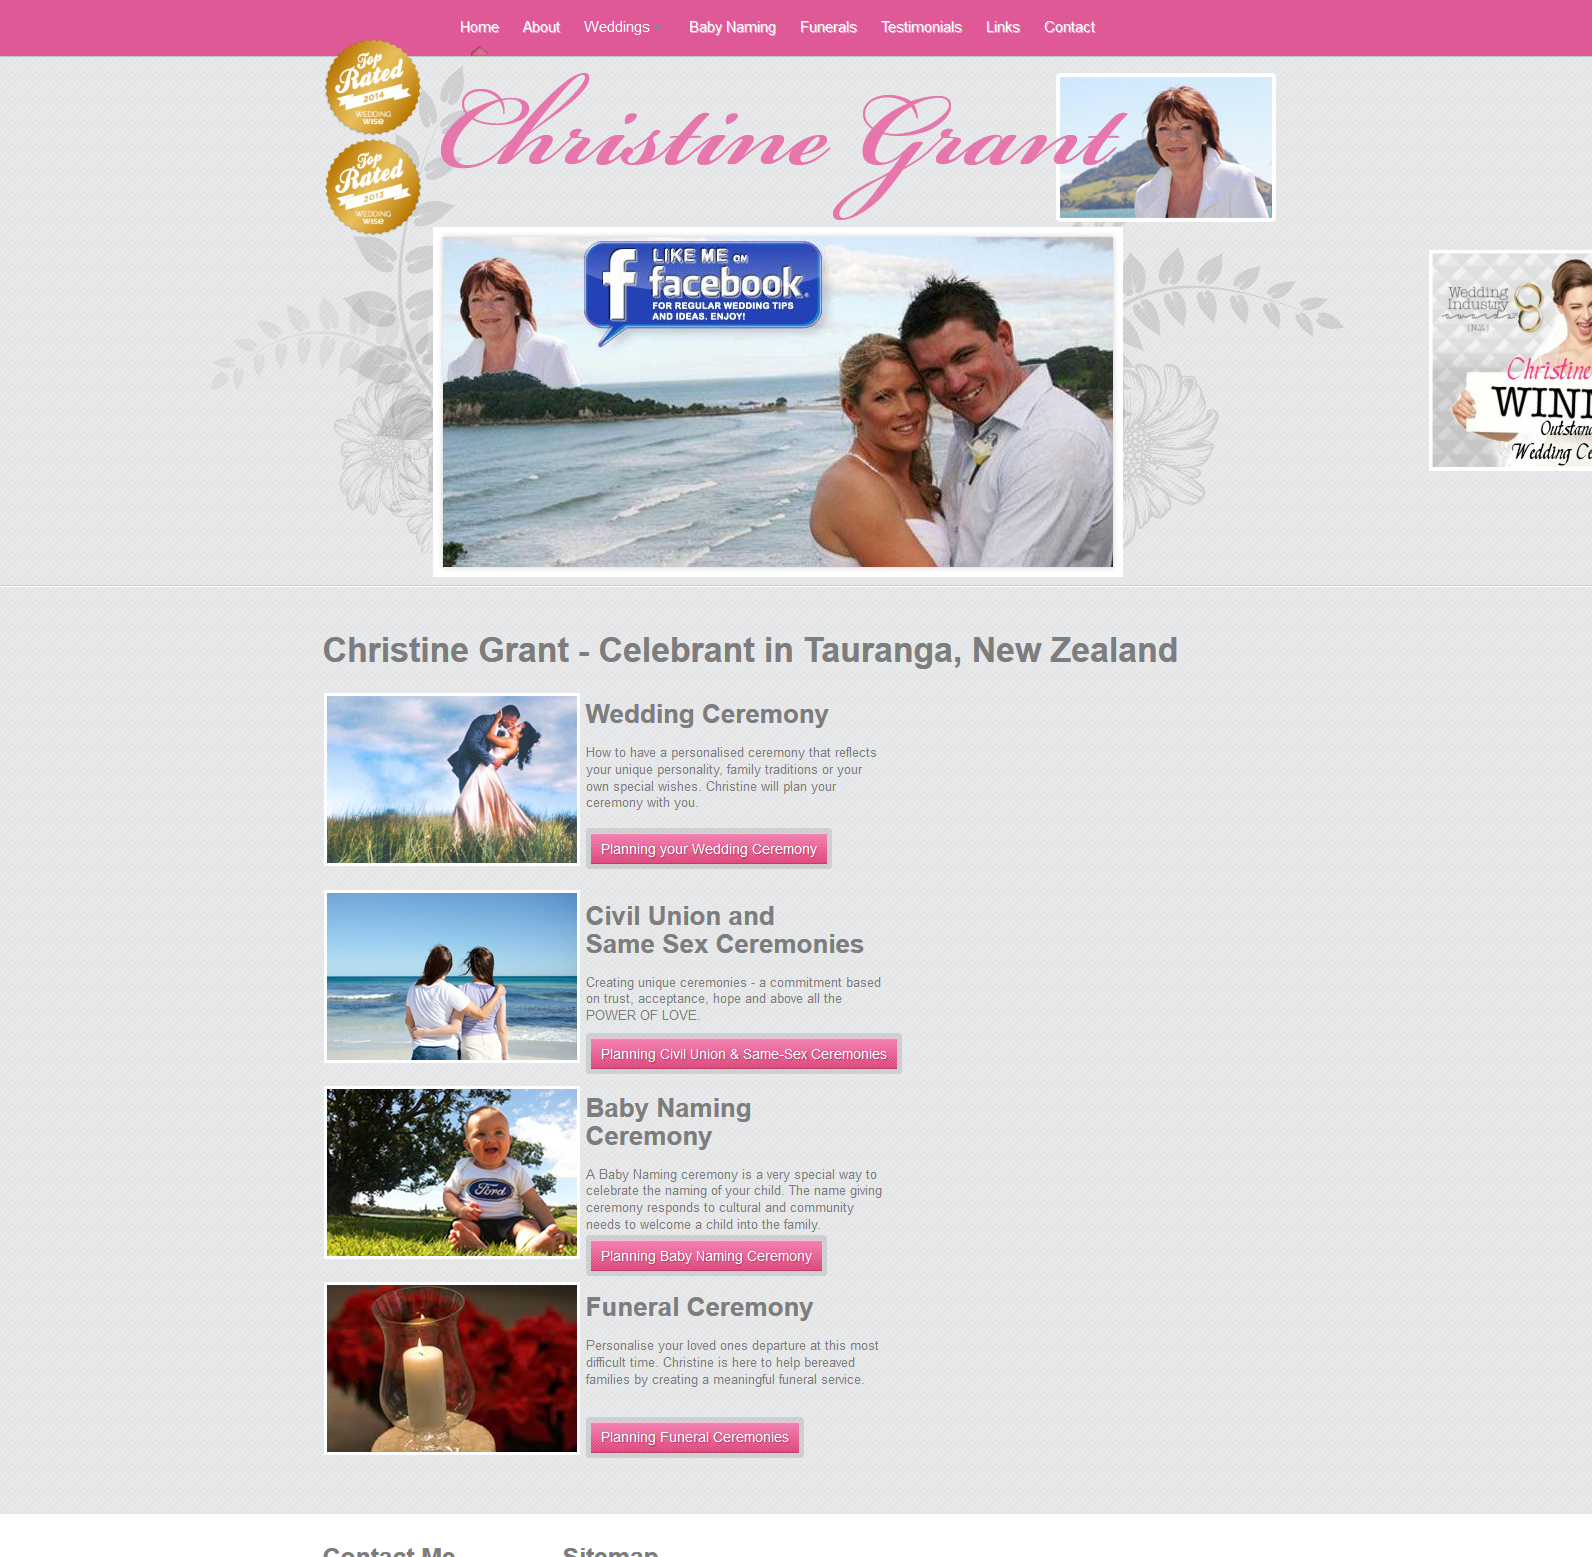 www.christinegrant.co.nz